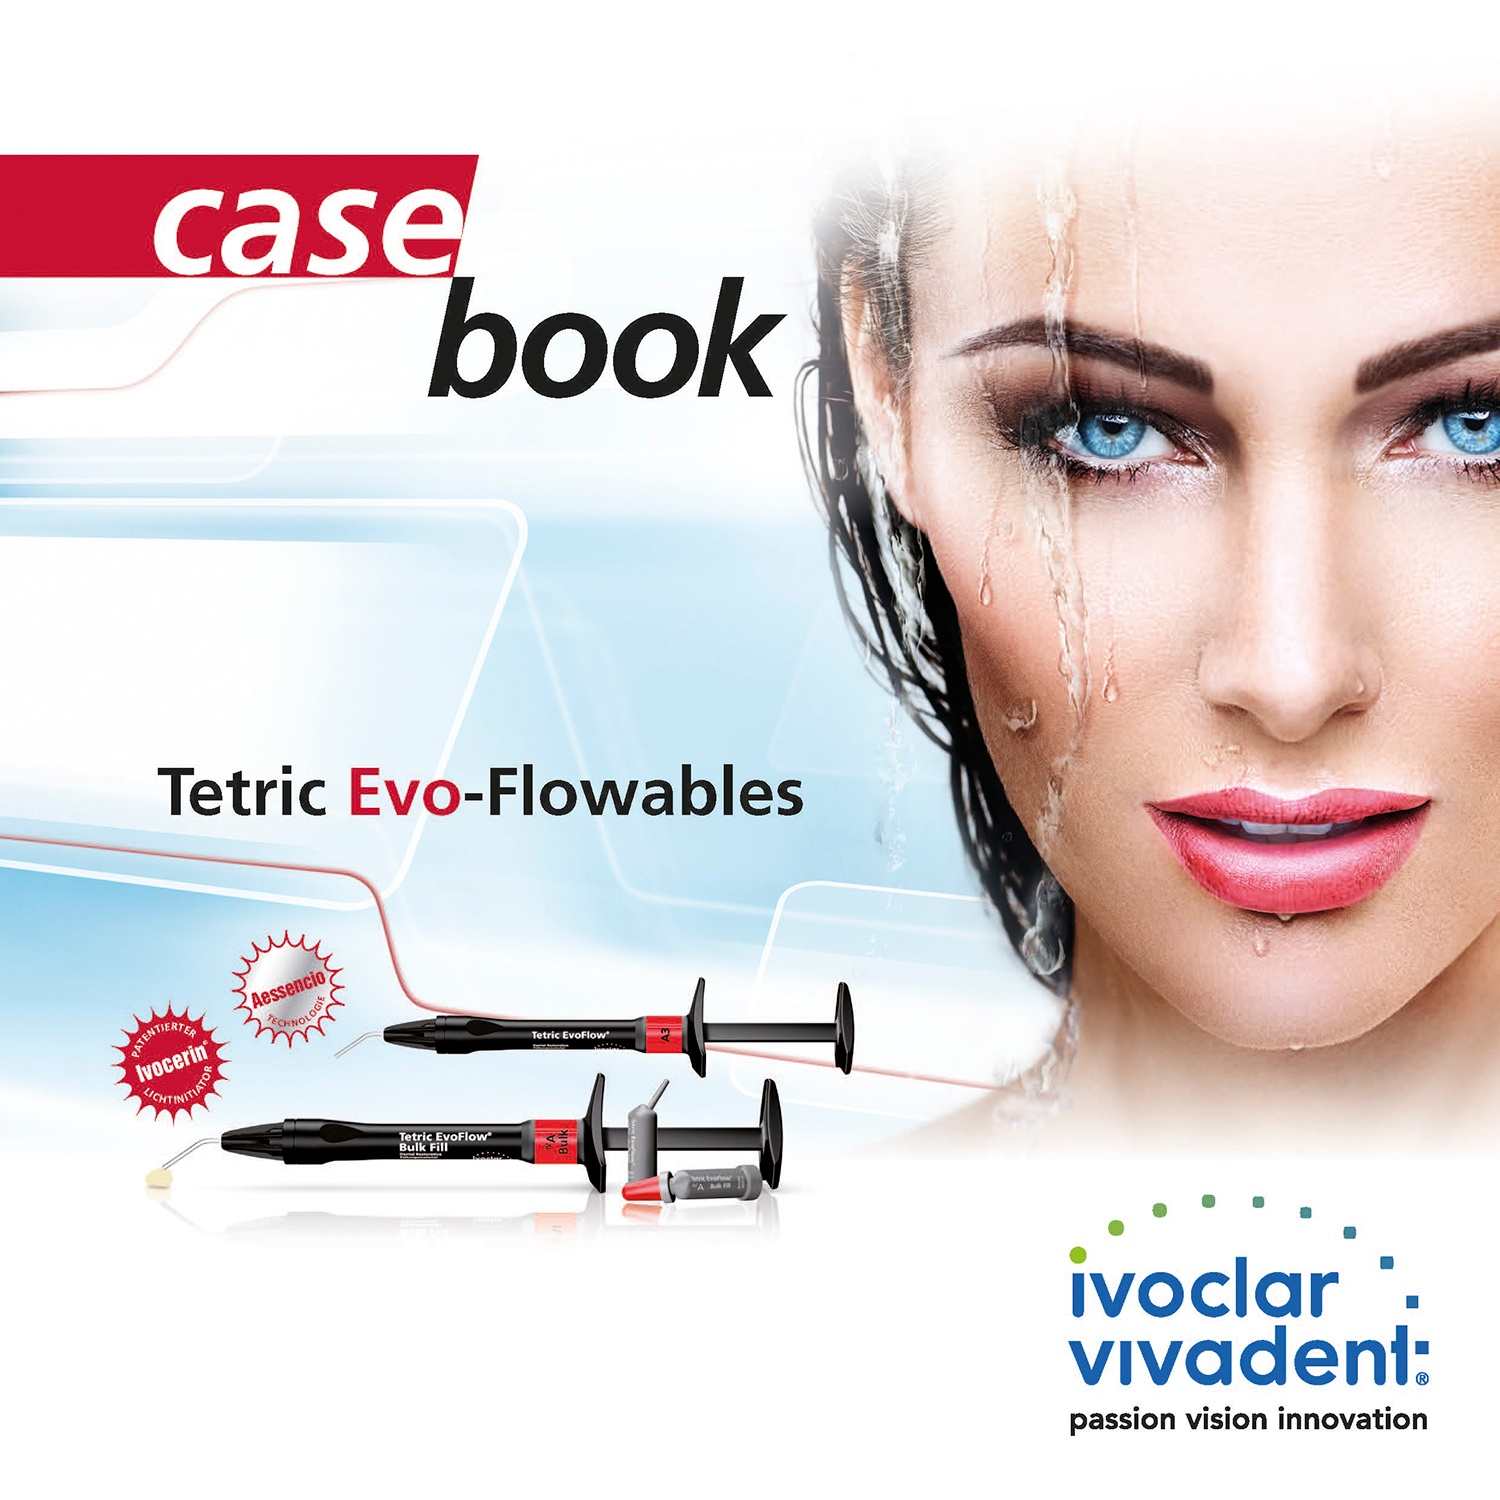 Case book Tetric Evo-Flowables.jpg